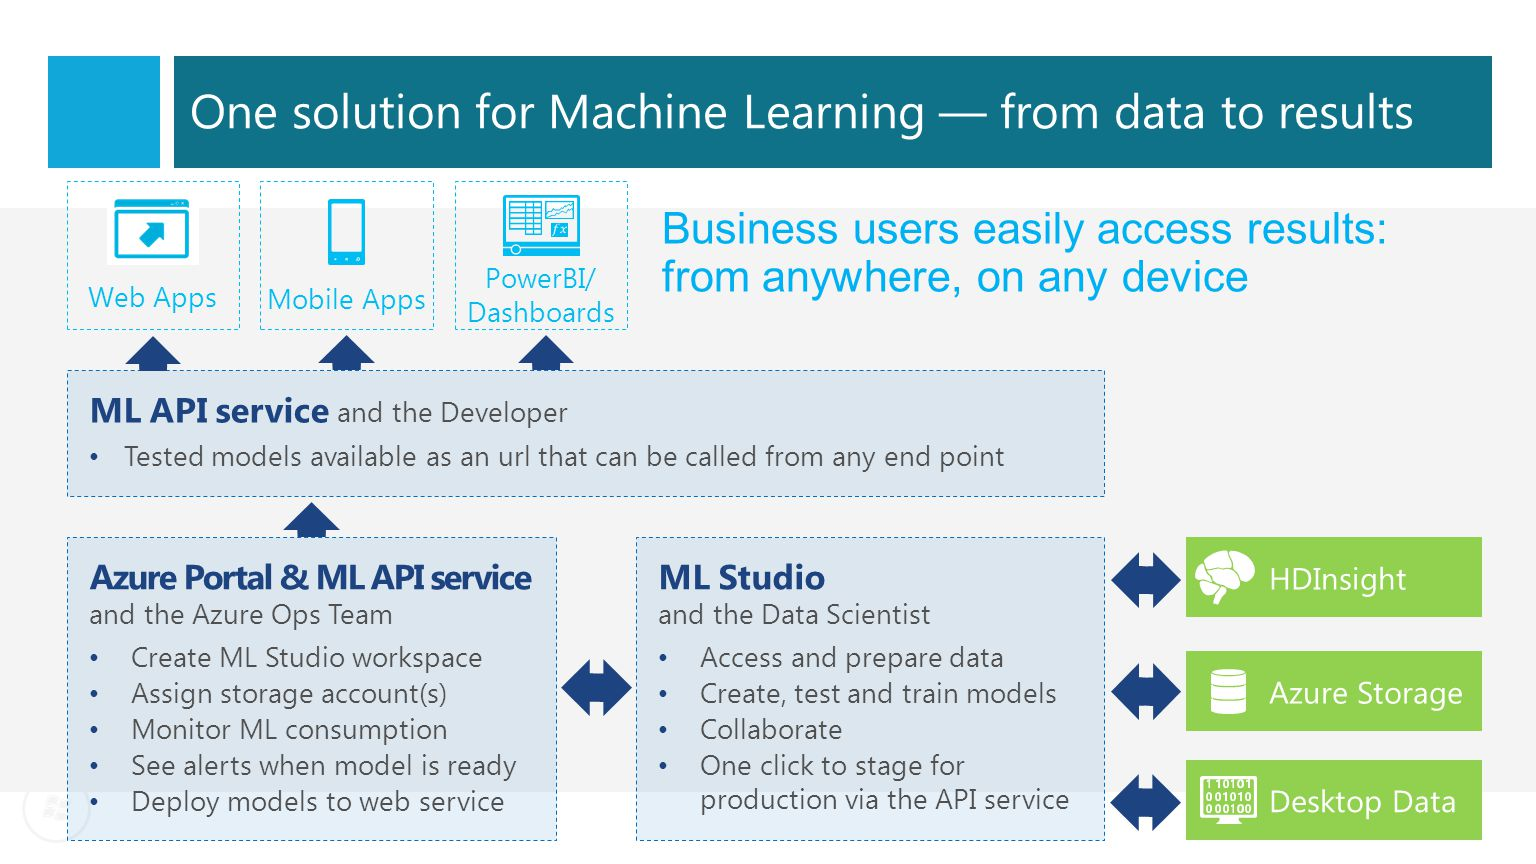 One solution for Machine Learning — from data to results